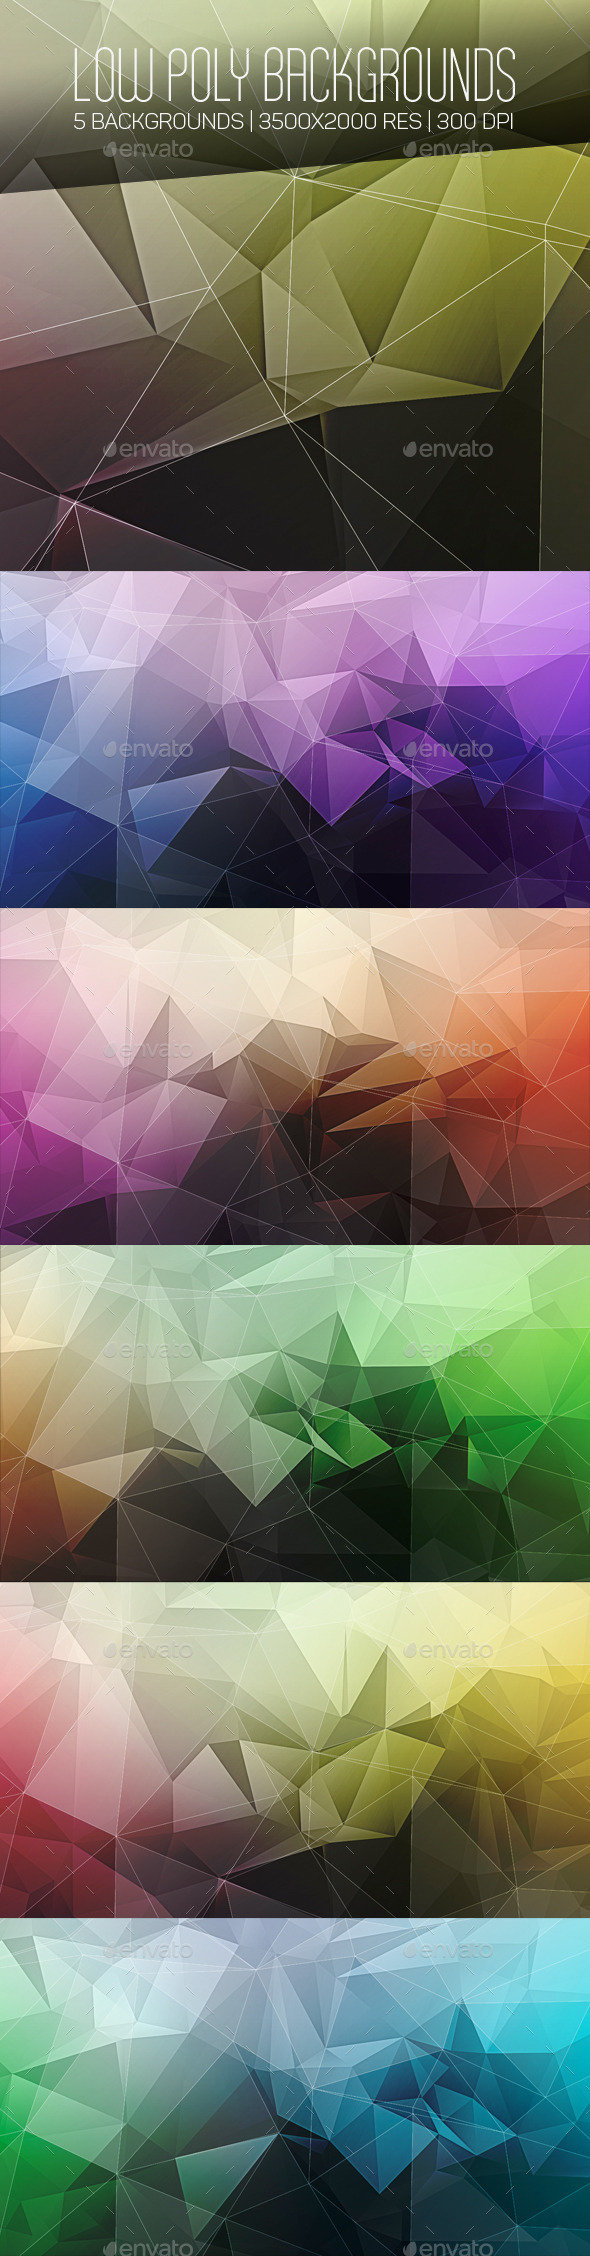 GraphicRiver Low Poly Backgrounds 10173812